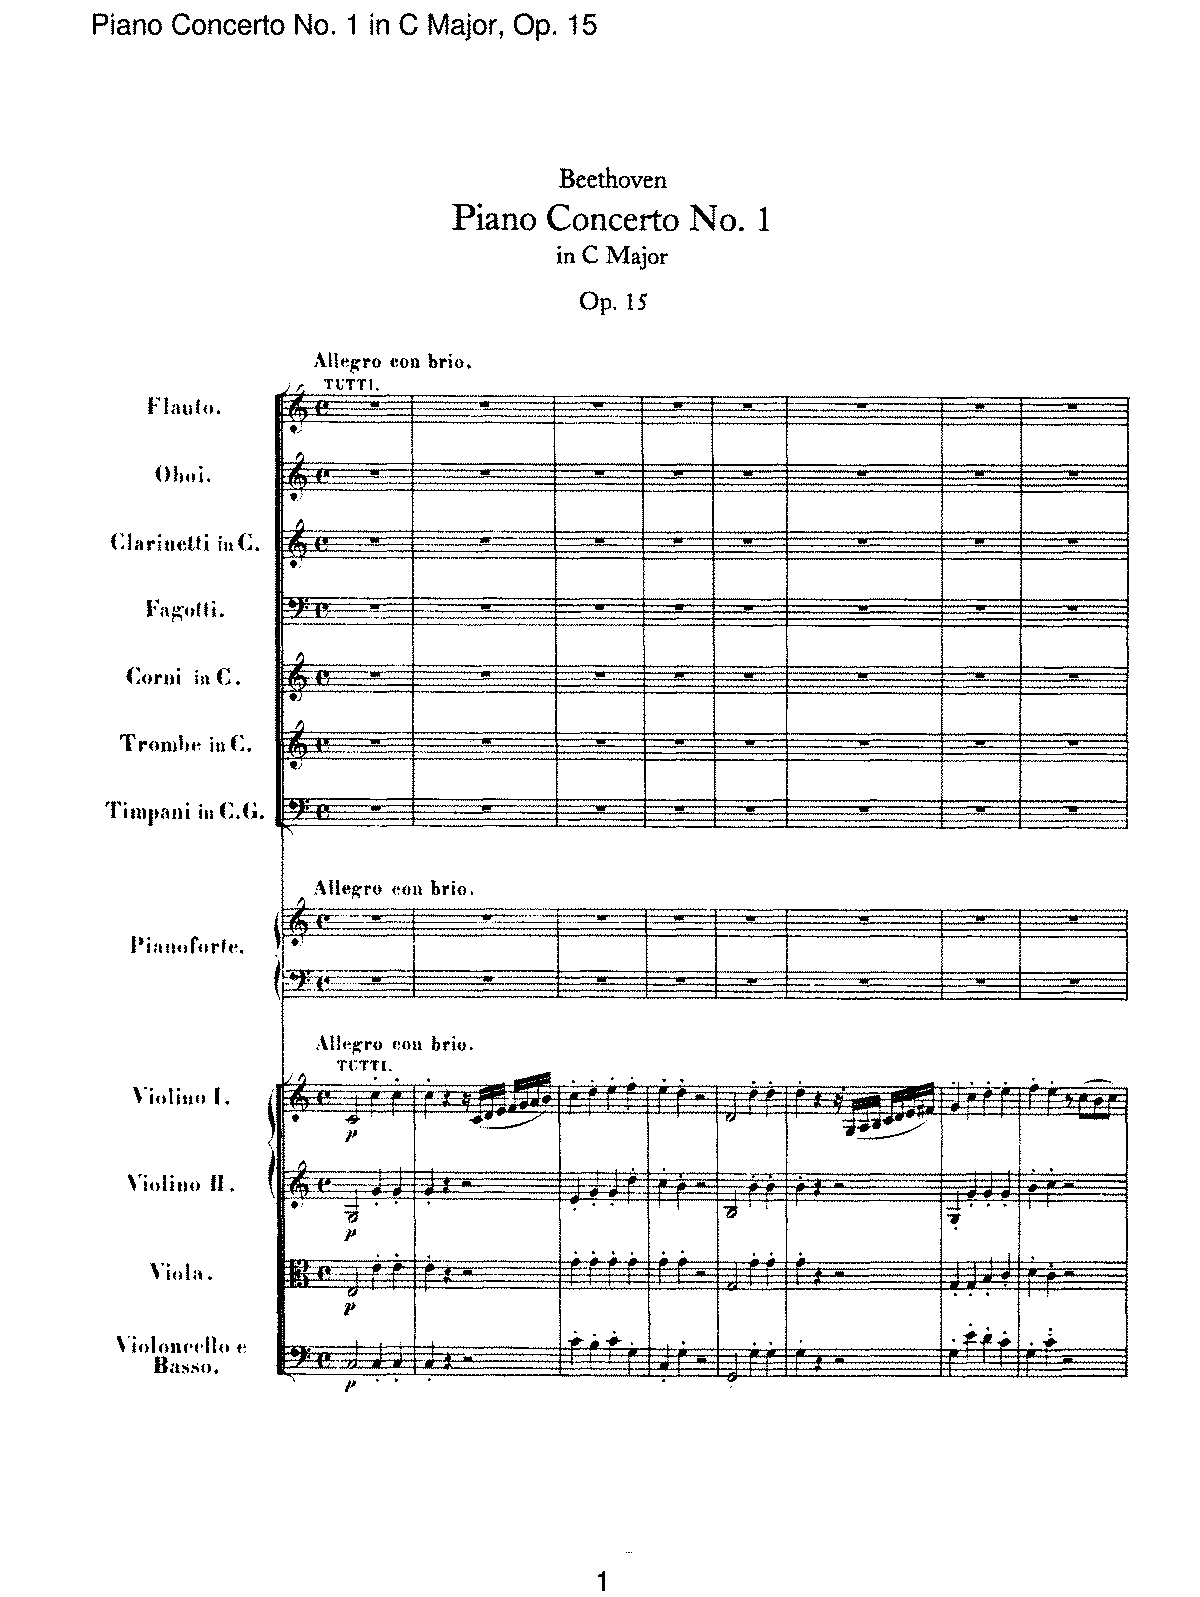 Piano Concerto No. 1 in C Major, Op. 15-I. Allegro con brio.pdf